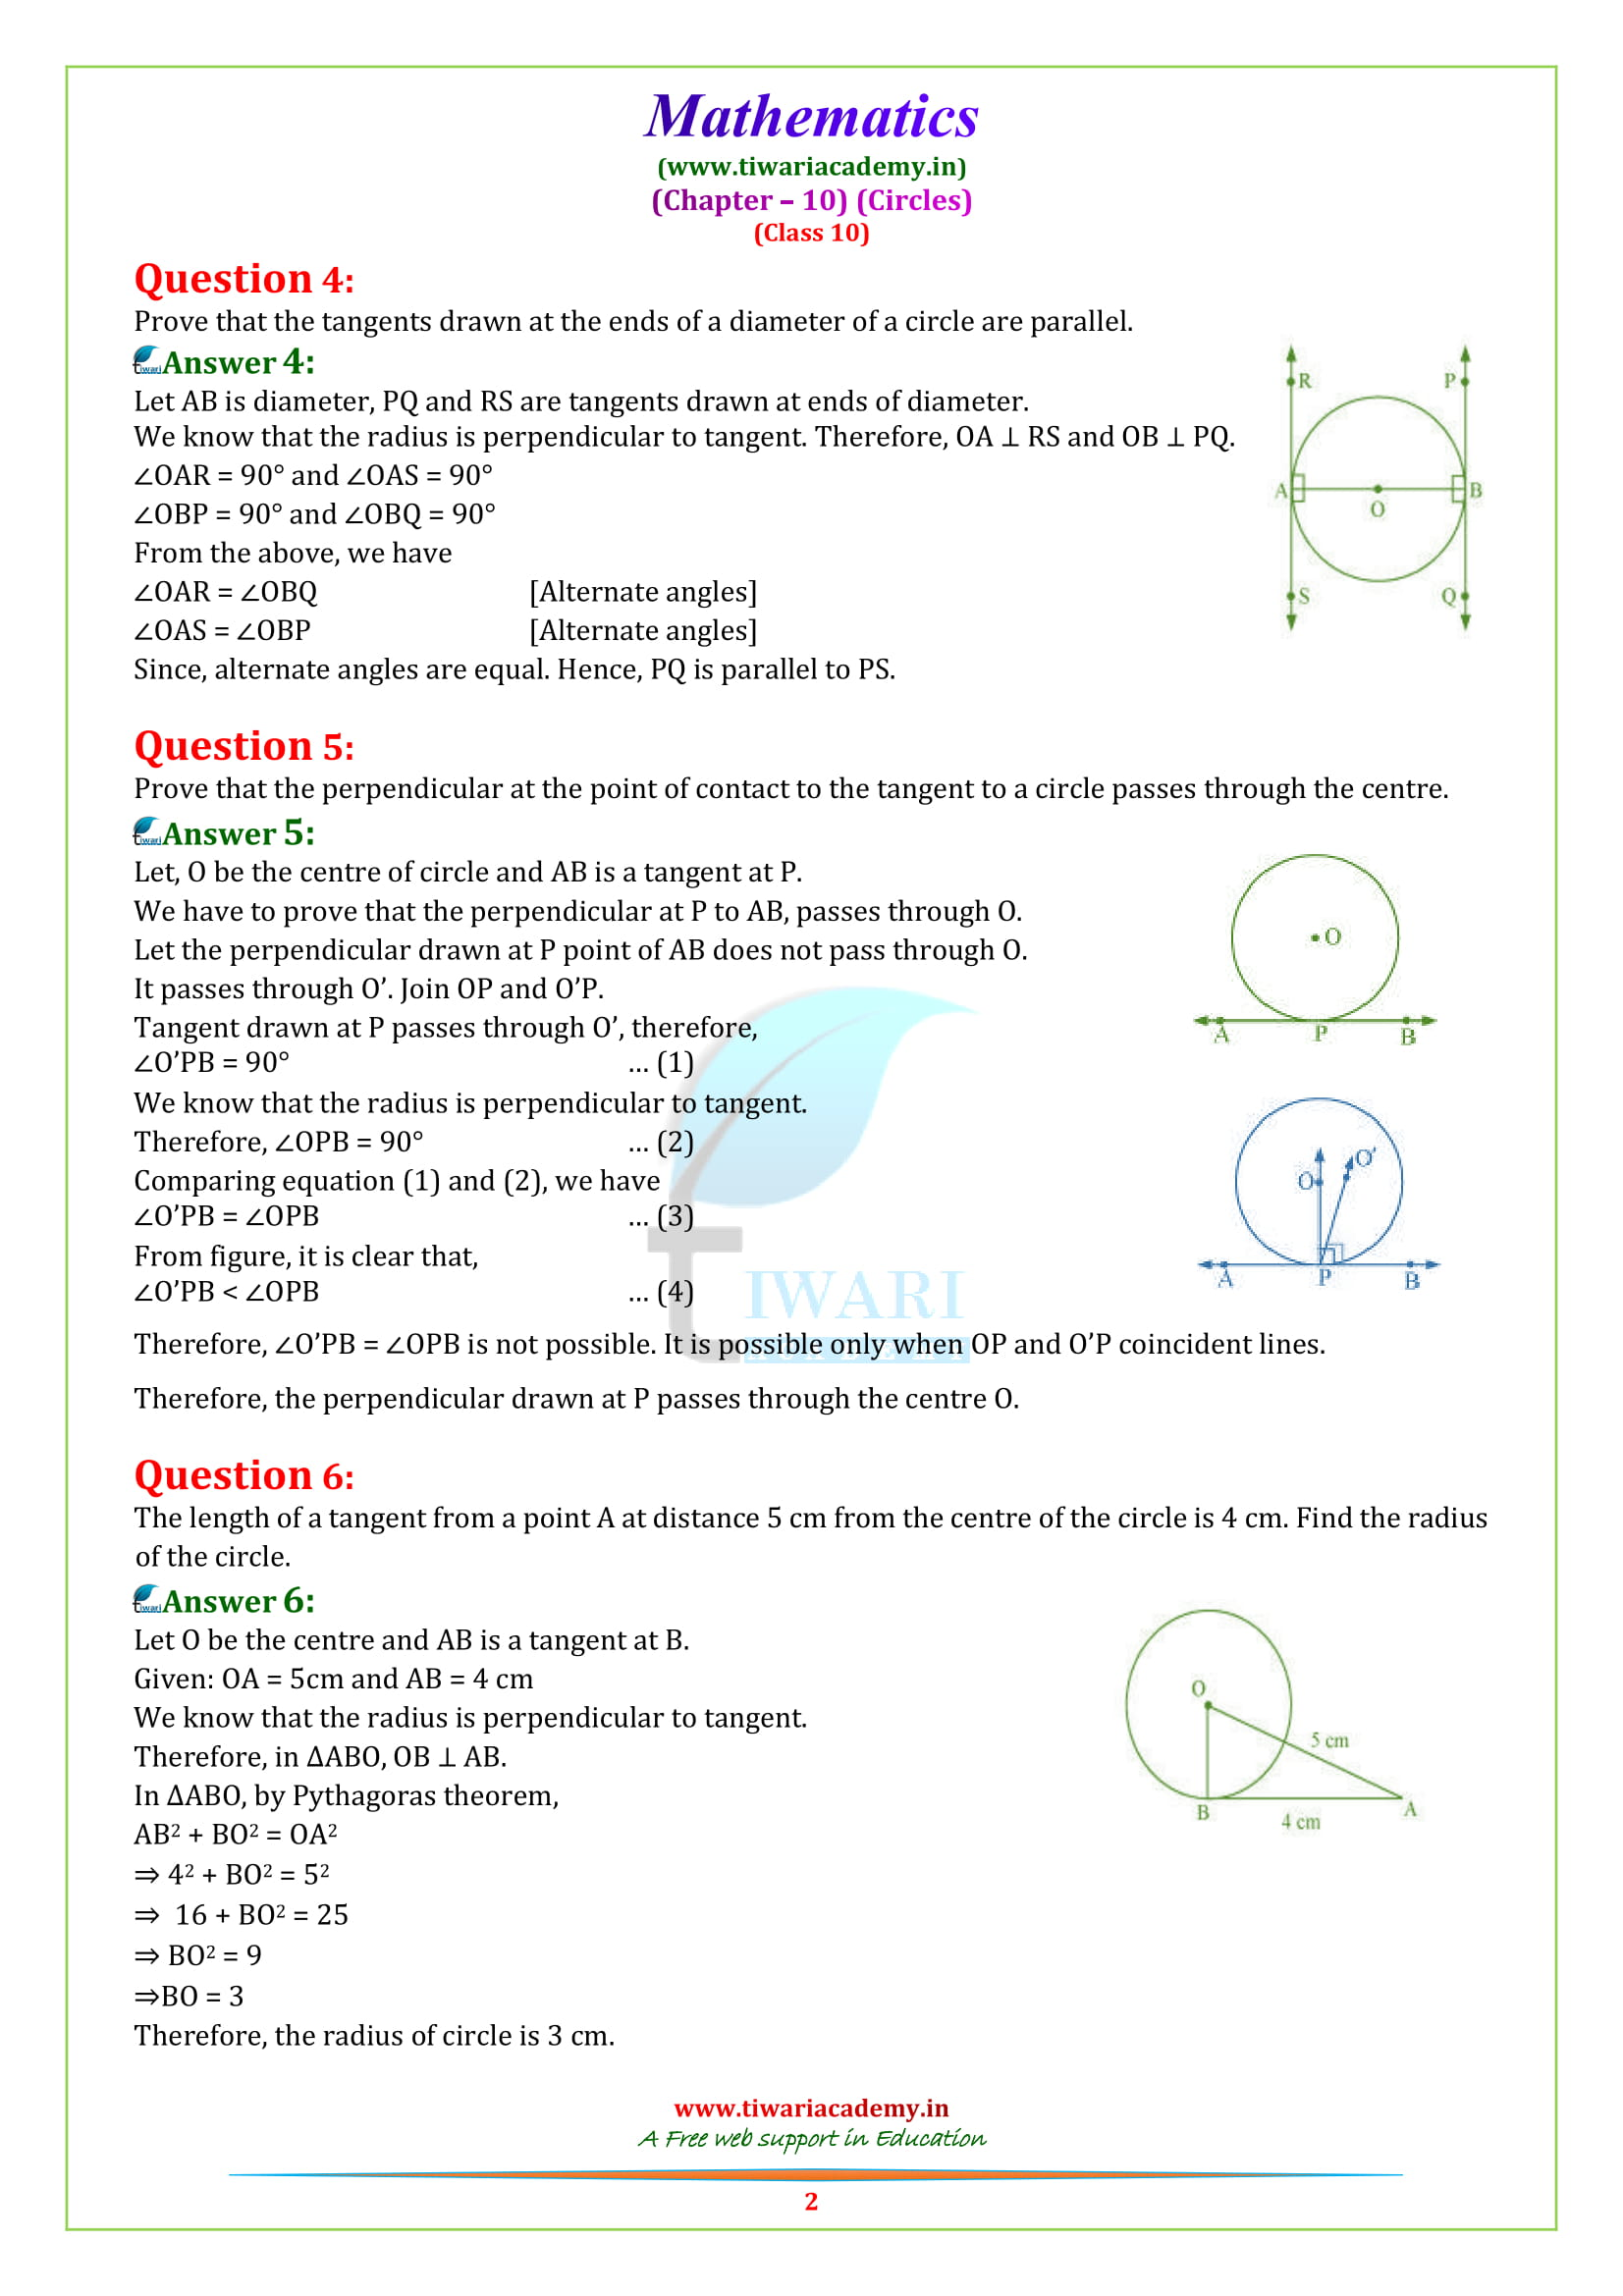 Class 10 Maths exercise 10.2 solutions updated for 2018-19